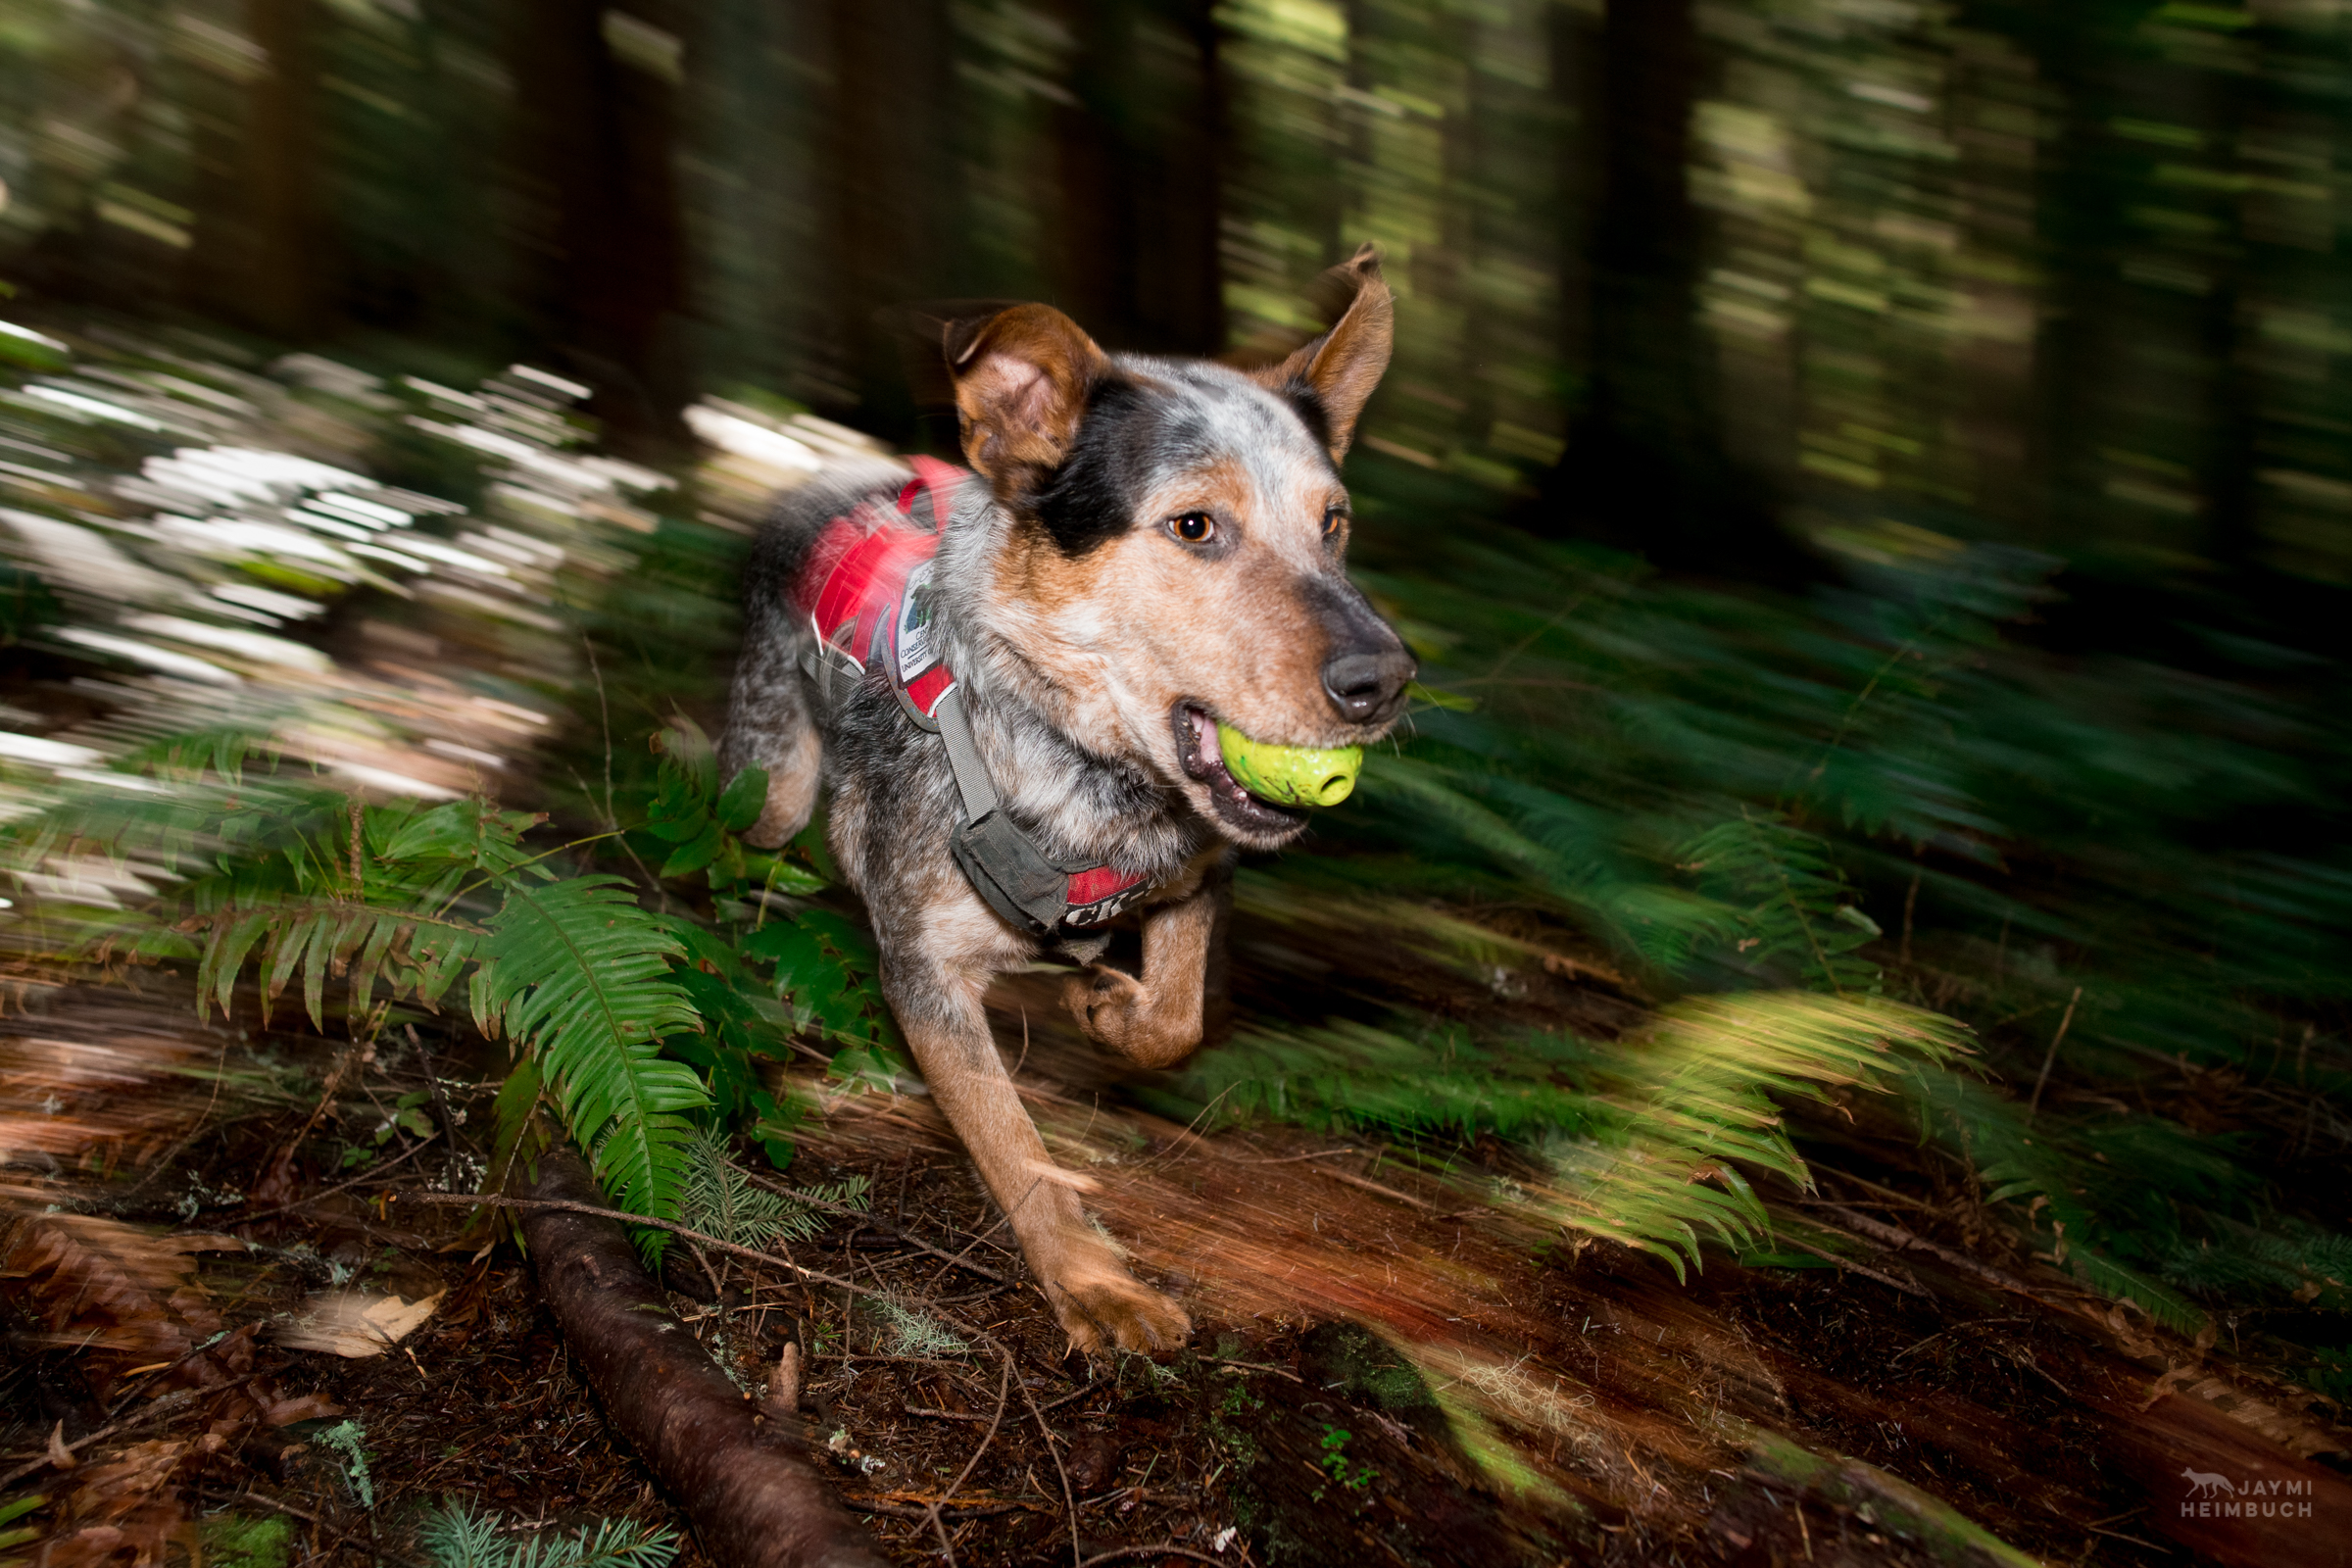 Hiccup, a rescued dog, runs through the forest with his reward ball. He is employed as a scent detection dog at Conservation Canines, University of Washington's Center for Conservation Biology, Washington